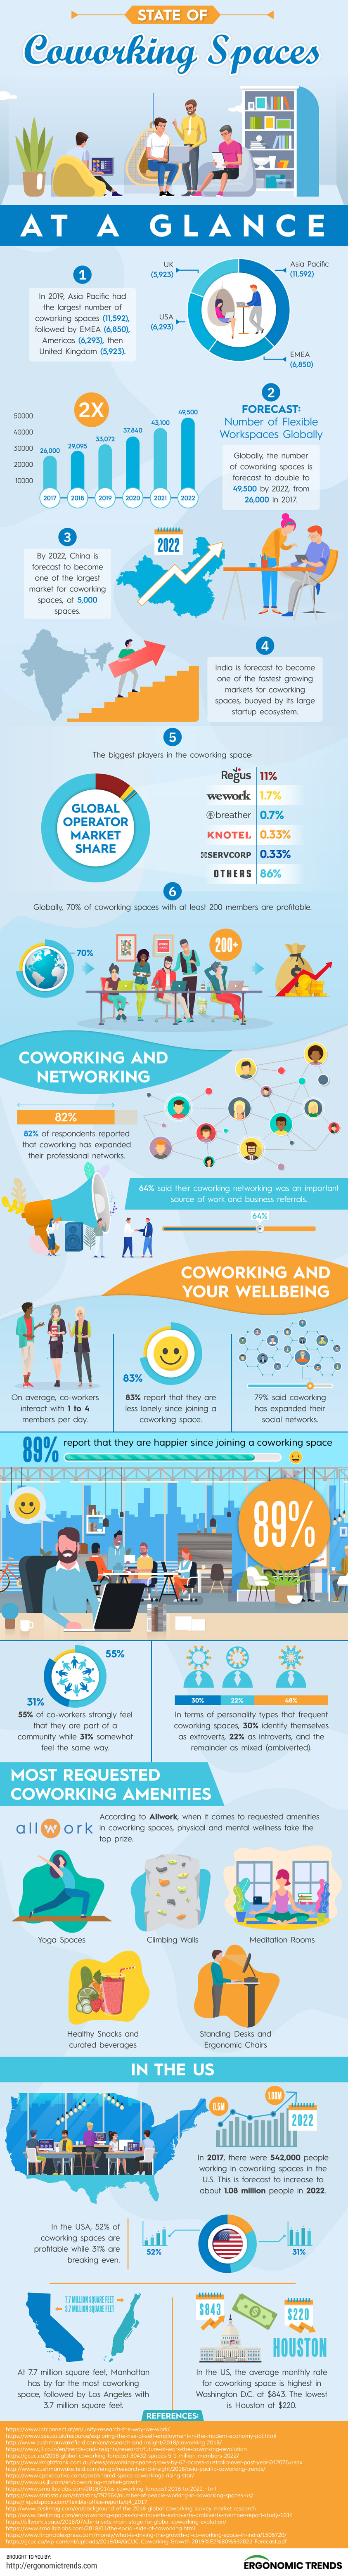 To really understand the state of coworking space and its impact on modern society, we've compiled 32 of the most illuminating statistics on coworking spaces that will surprise and inspire you.